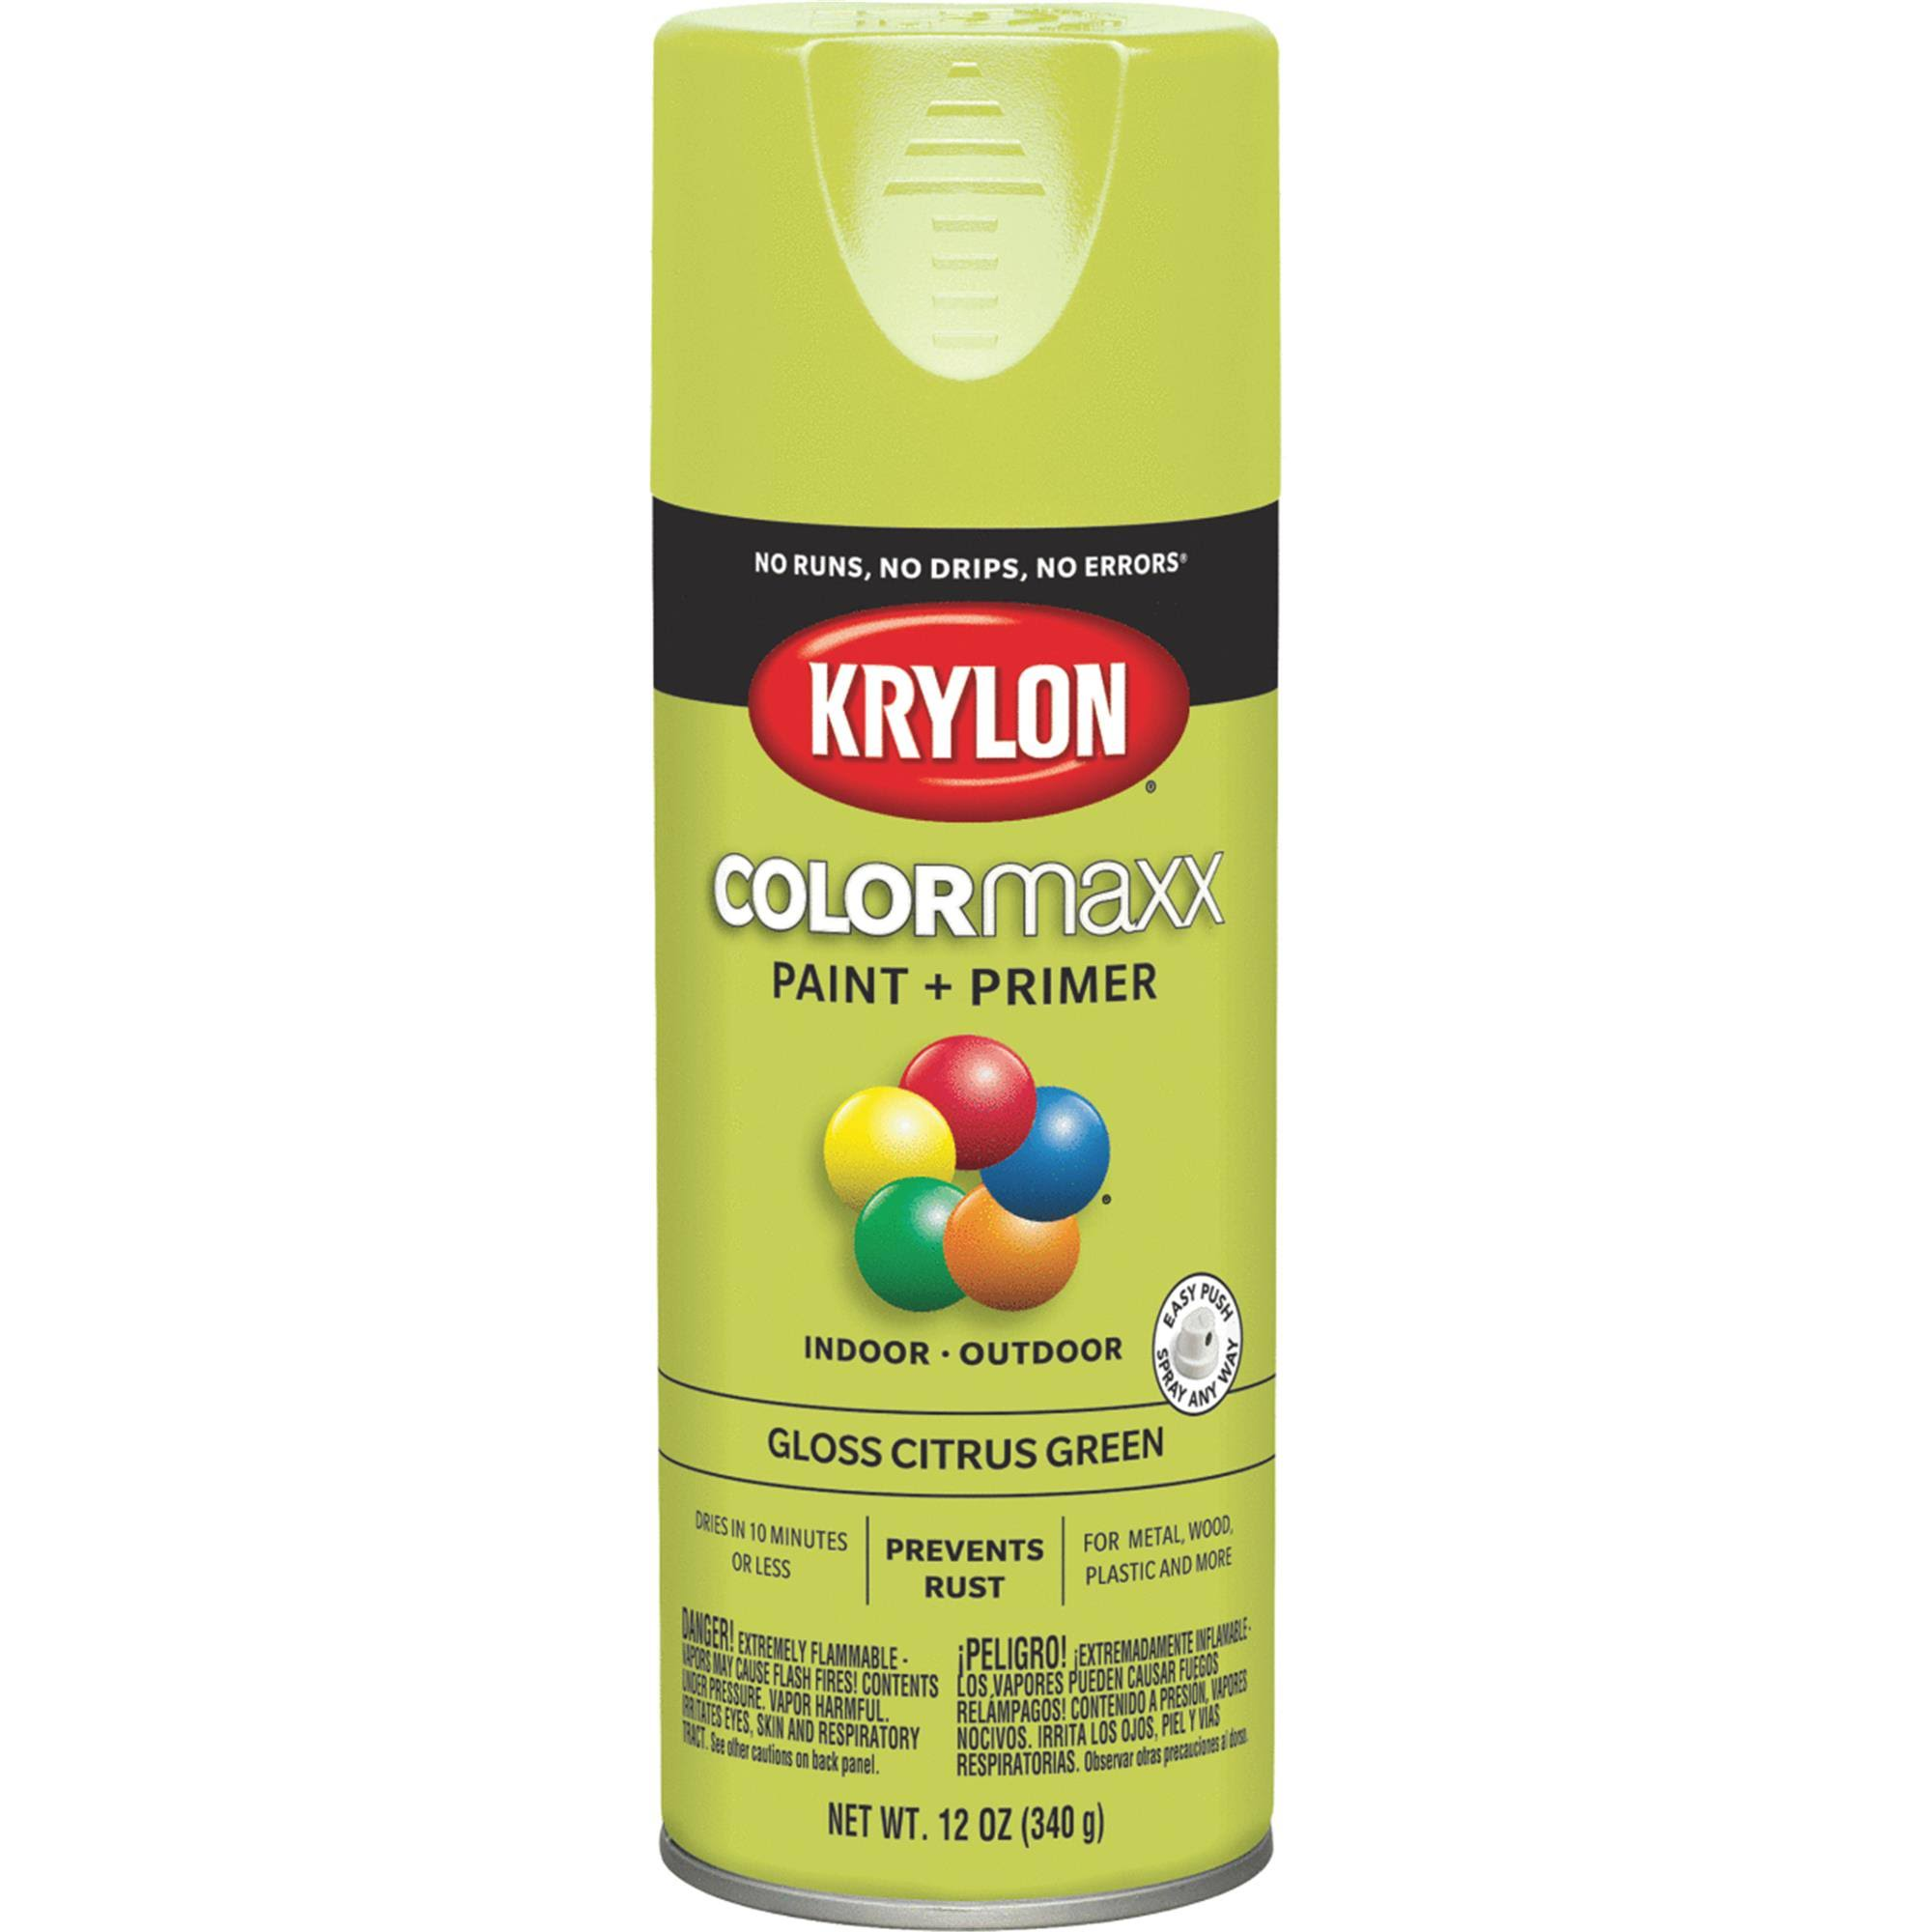 Krylon Colormaxx Paint and Primer Spray - Gloss Citrus Green, 12oz